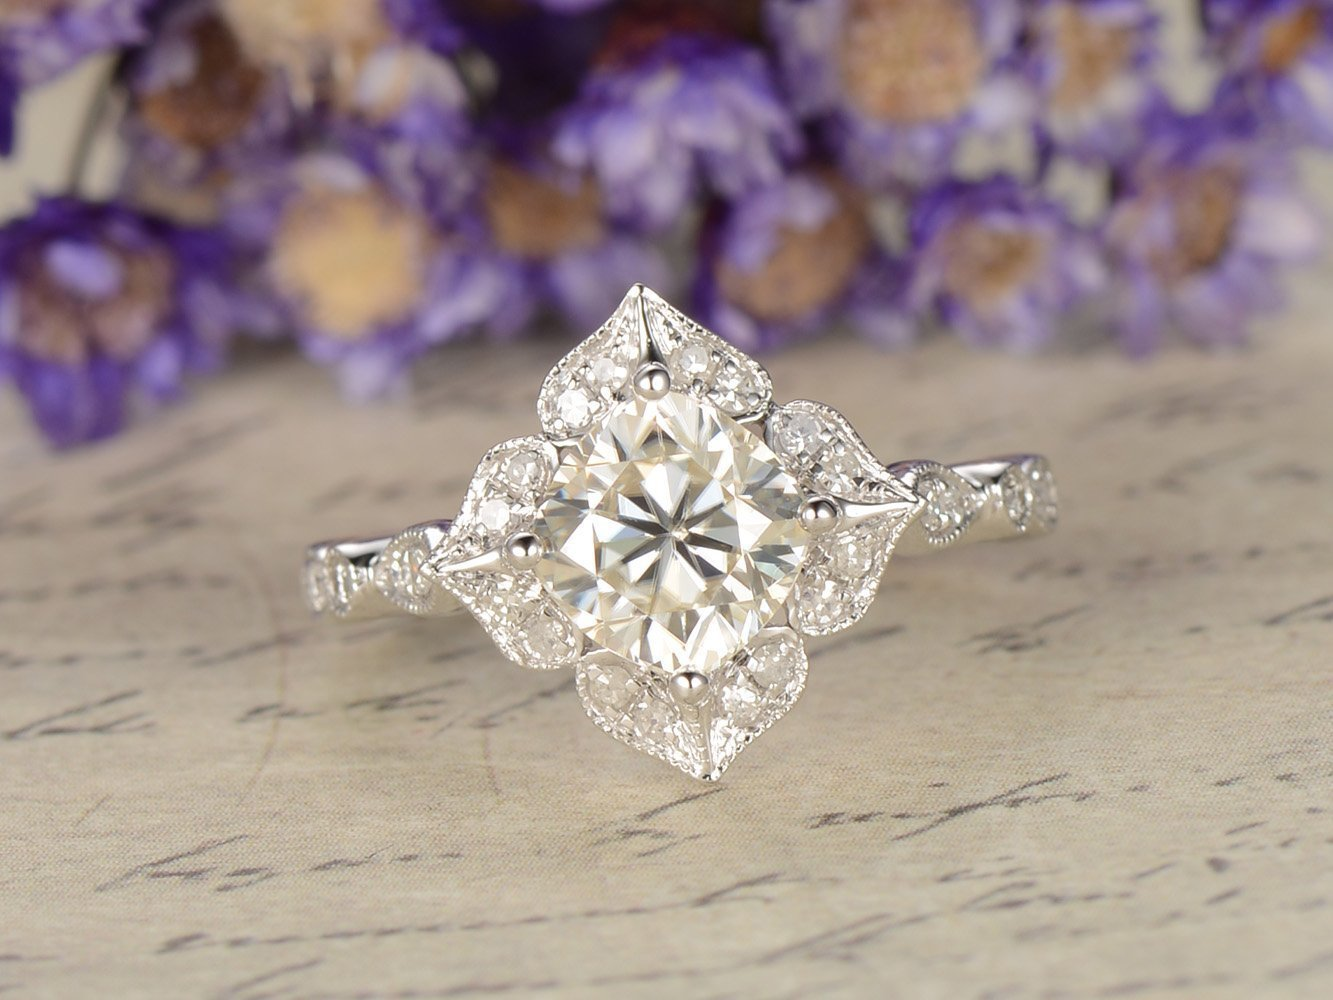 Moissanite Ring White Gold 6mm Cushion Cut VS Moissanite Engagement Ring Diamond Wedding Anniversary 14k Retro Floral Vintage Antique Art Deco Wedding Band